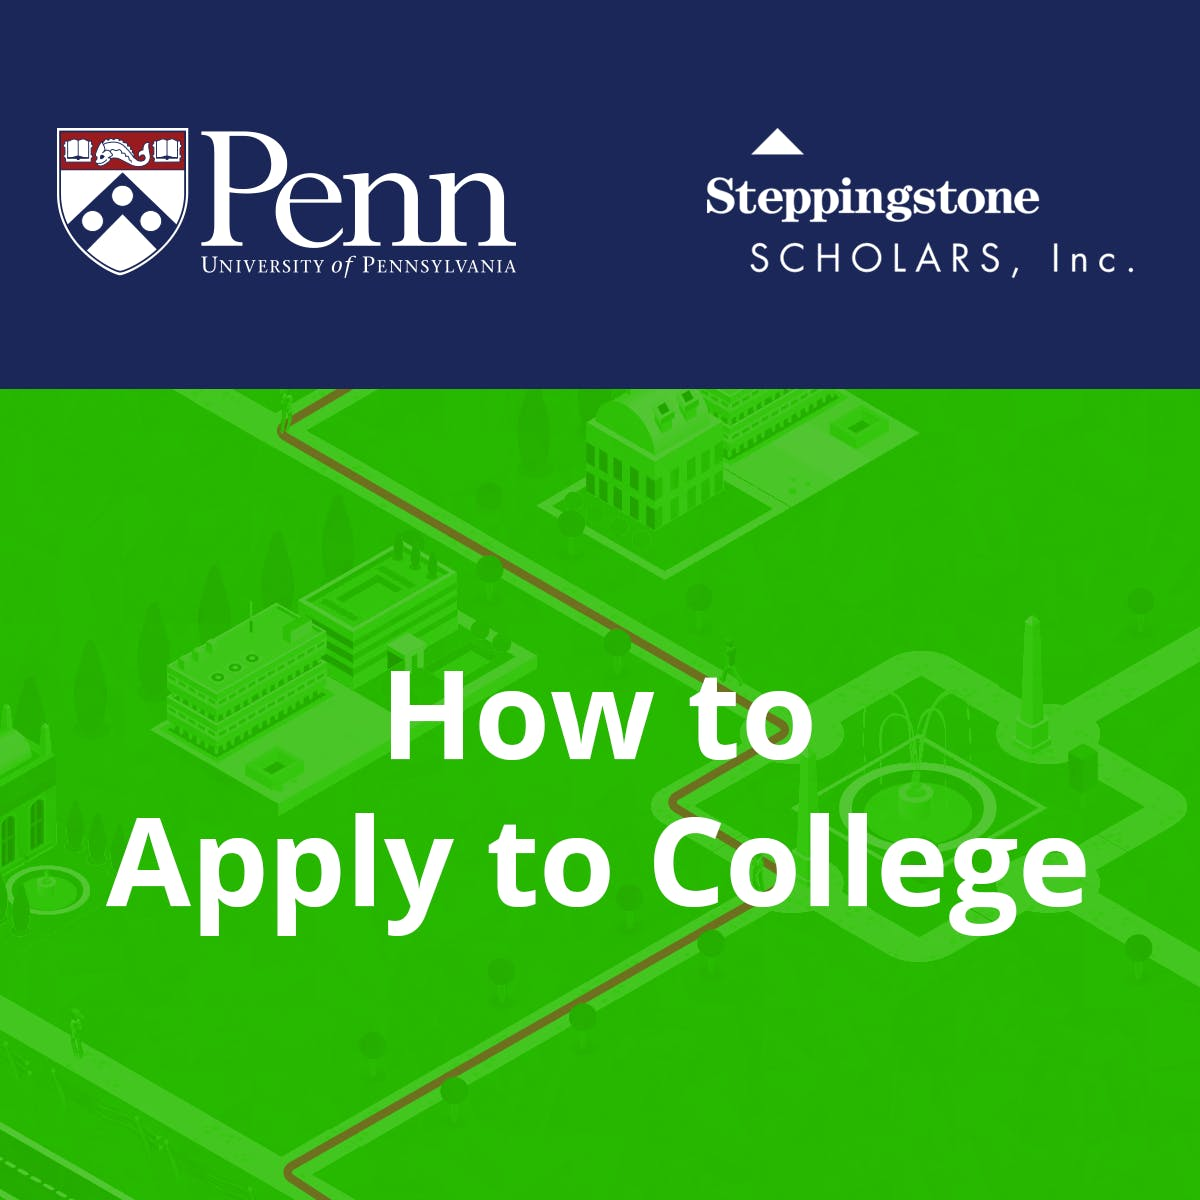 How to Apply to College